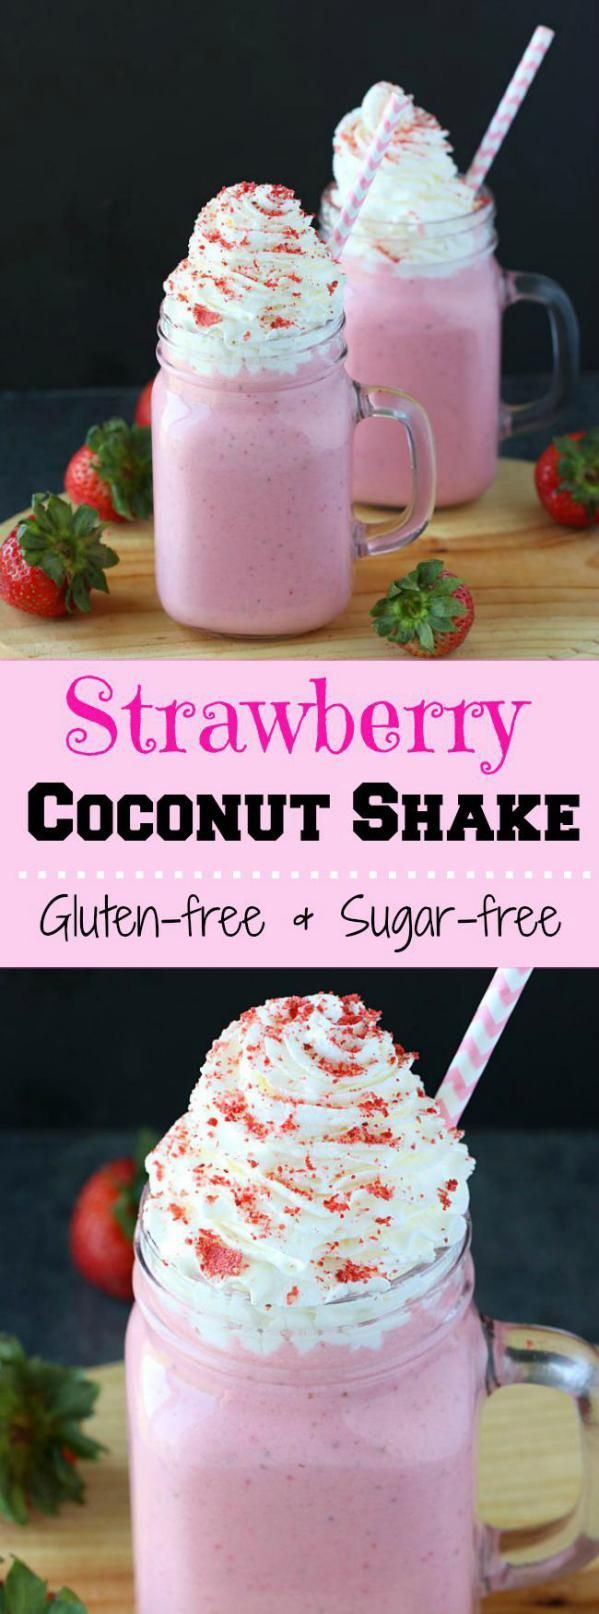 5-ingredient sweet and creamy Strawberry Coconut shake makes a delicious and satisfying breakfast.Gluten-free, sugar-free and can be vegan too!